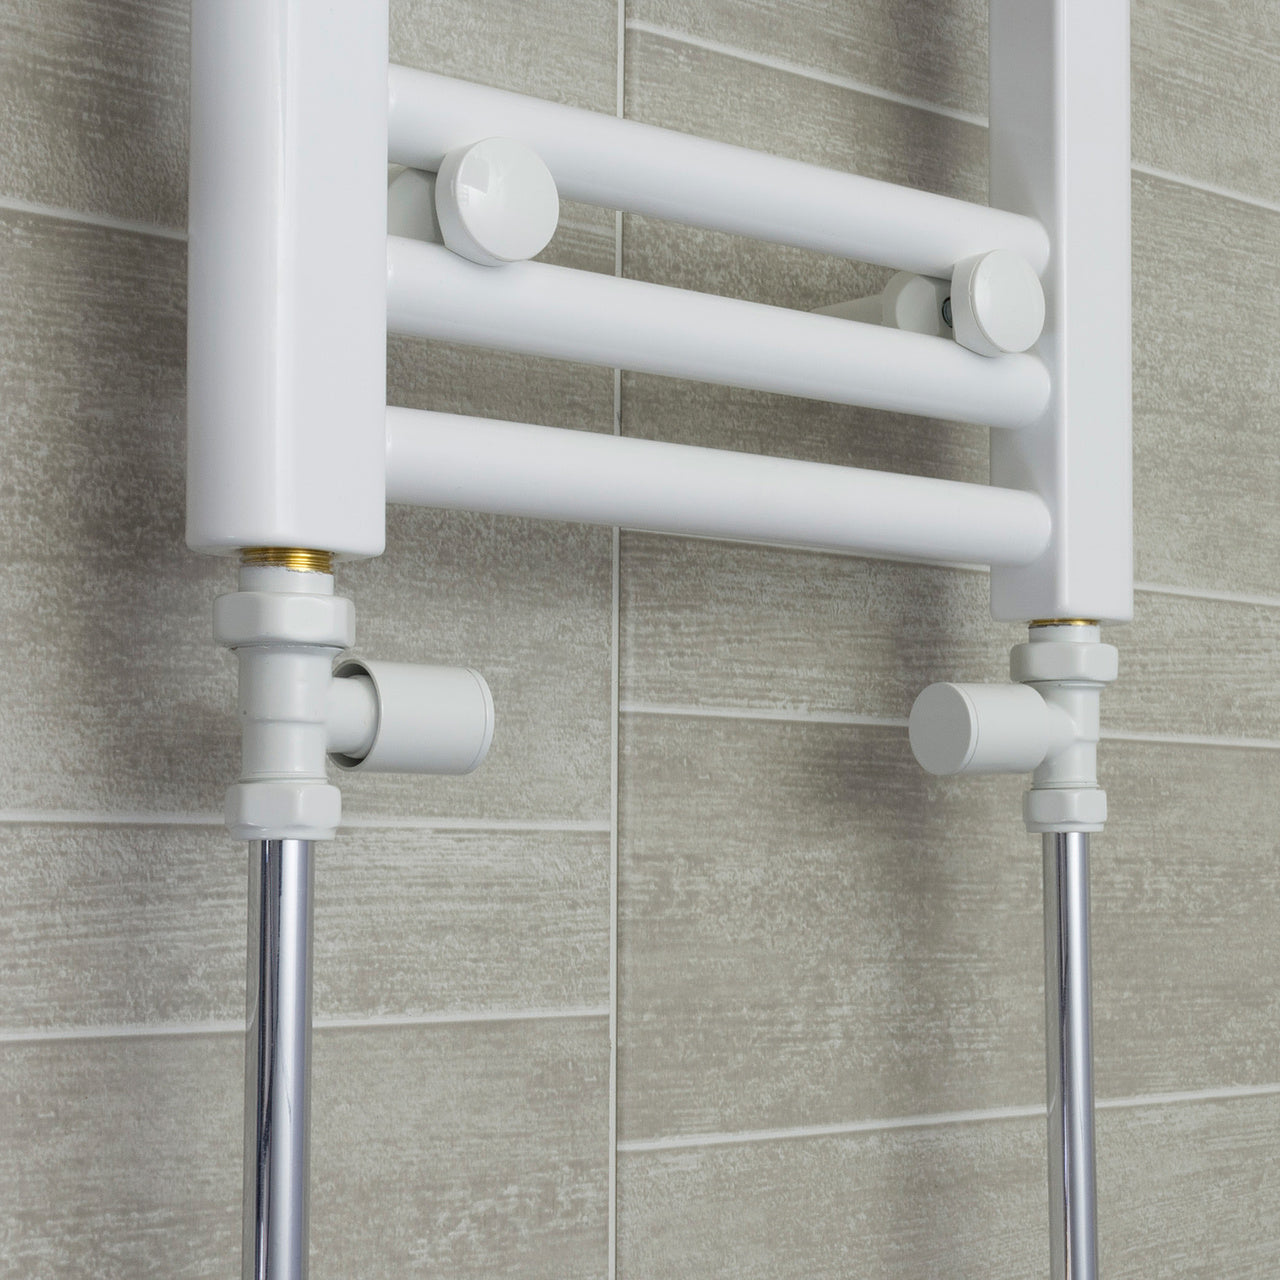 750mm Wide 1300mm High Flat White Heated Towel Rail Radiator HTR,With Straight Valve